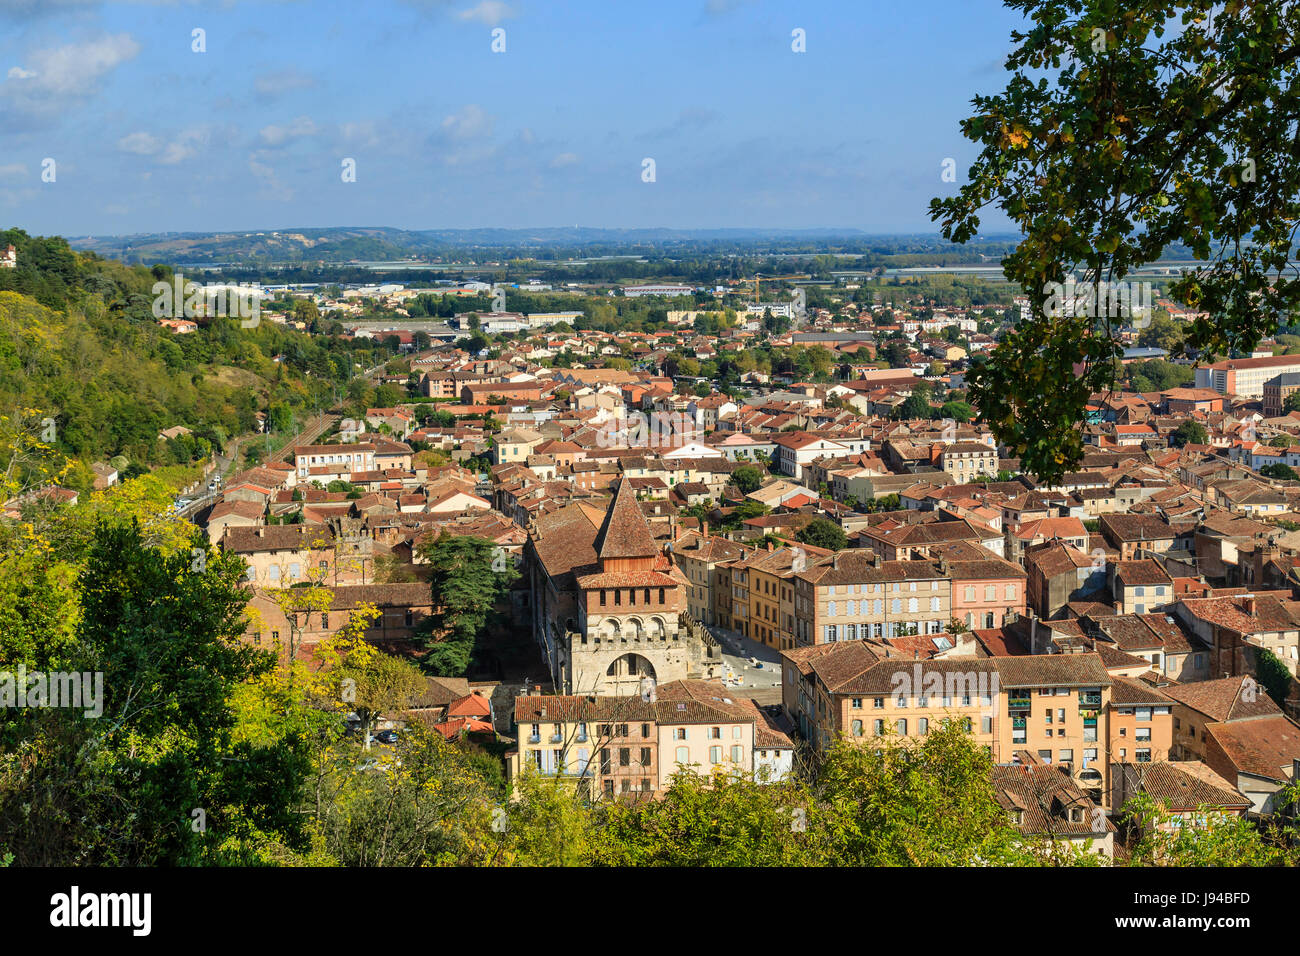 France, Tarn et Garonne, Moissac, general view from the Calvary Site - Stock Image